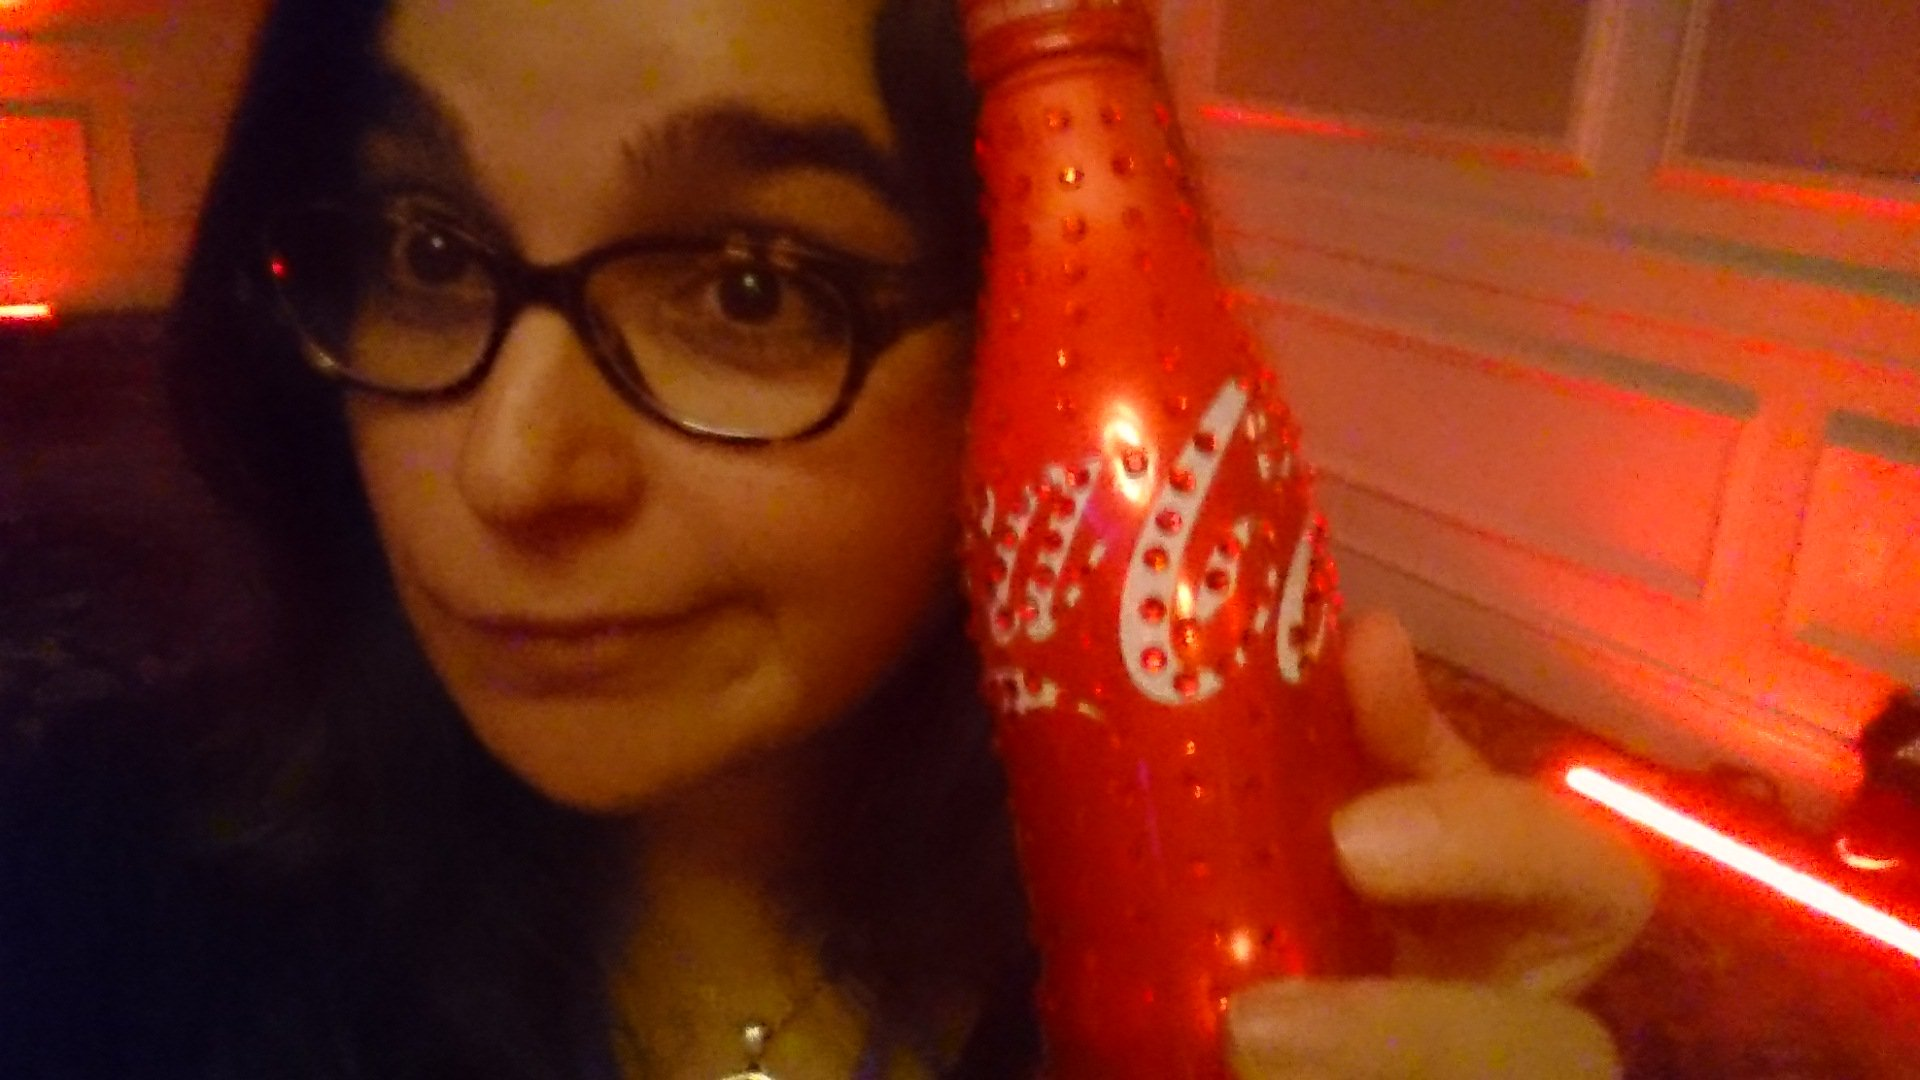 Last week at the #Blogalicious8 @CocaCola Welcome Party, I was oohhing and ahhing the bedazzled #Coke bottle. #SHINY #ContentIsLife https://t.co/AFLTciuVkM